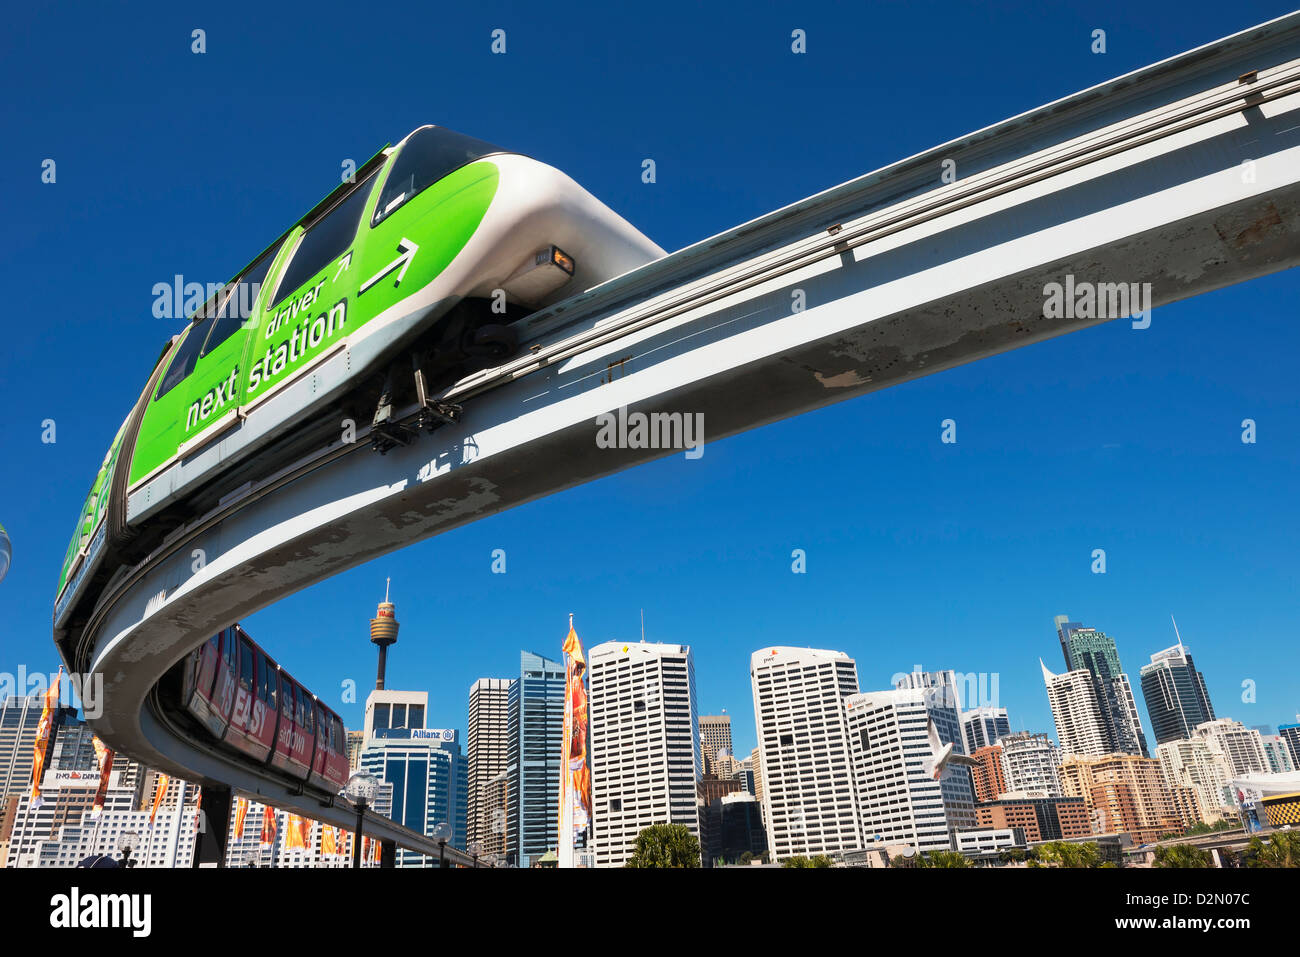 En Monorail Darling Harbour, Sydney, New South Wales, Australie, Pacifique Photo Stock